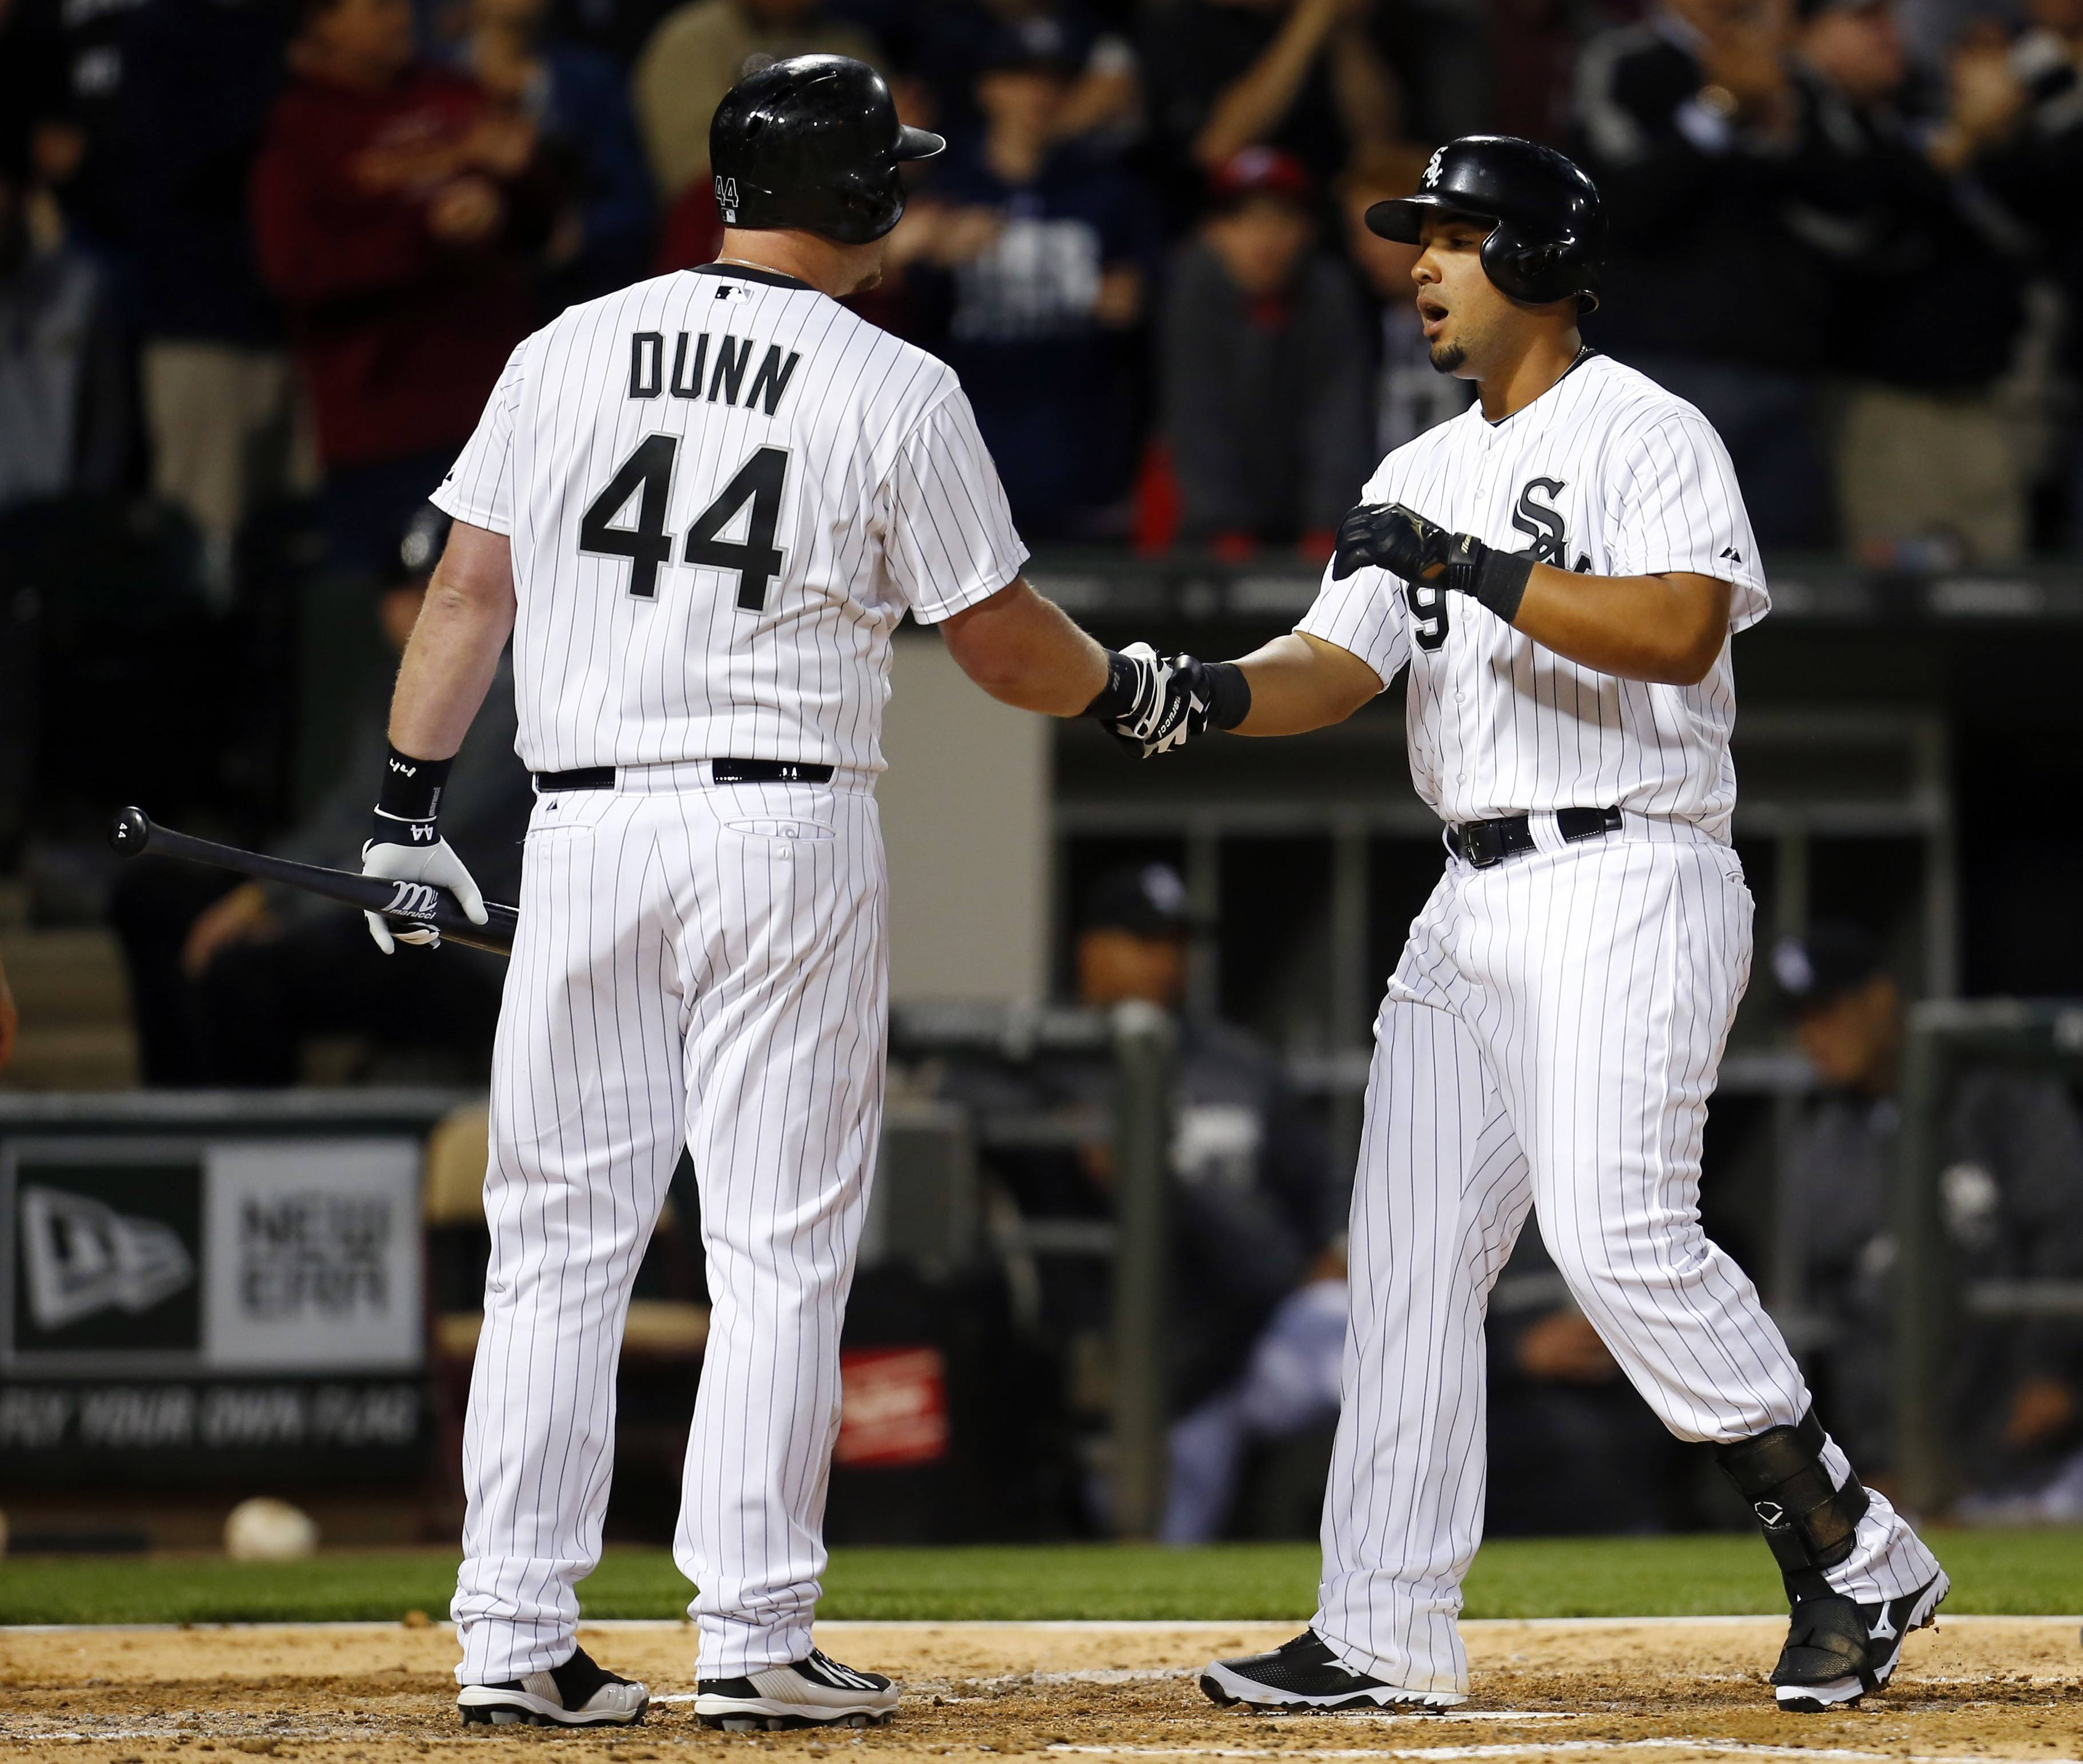 White Sox first baseman Jose Abreu is greeted by Adam Dunn at home plate after hitting a 2-run homer against the Tigers in the fifth inning Monday night.